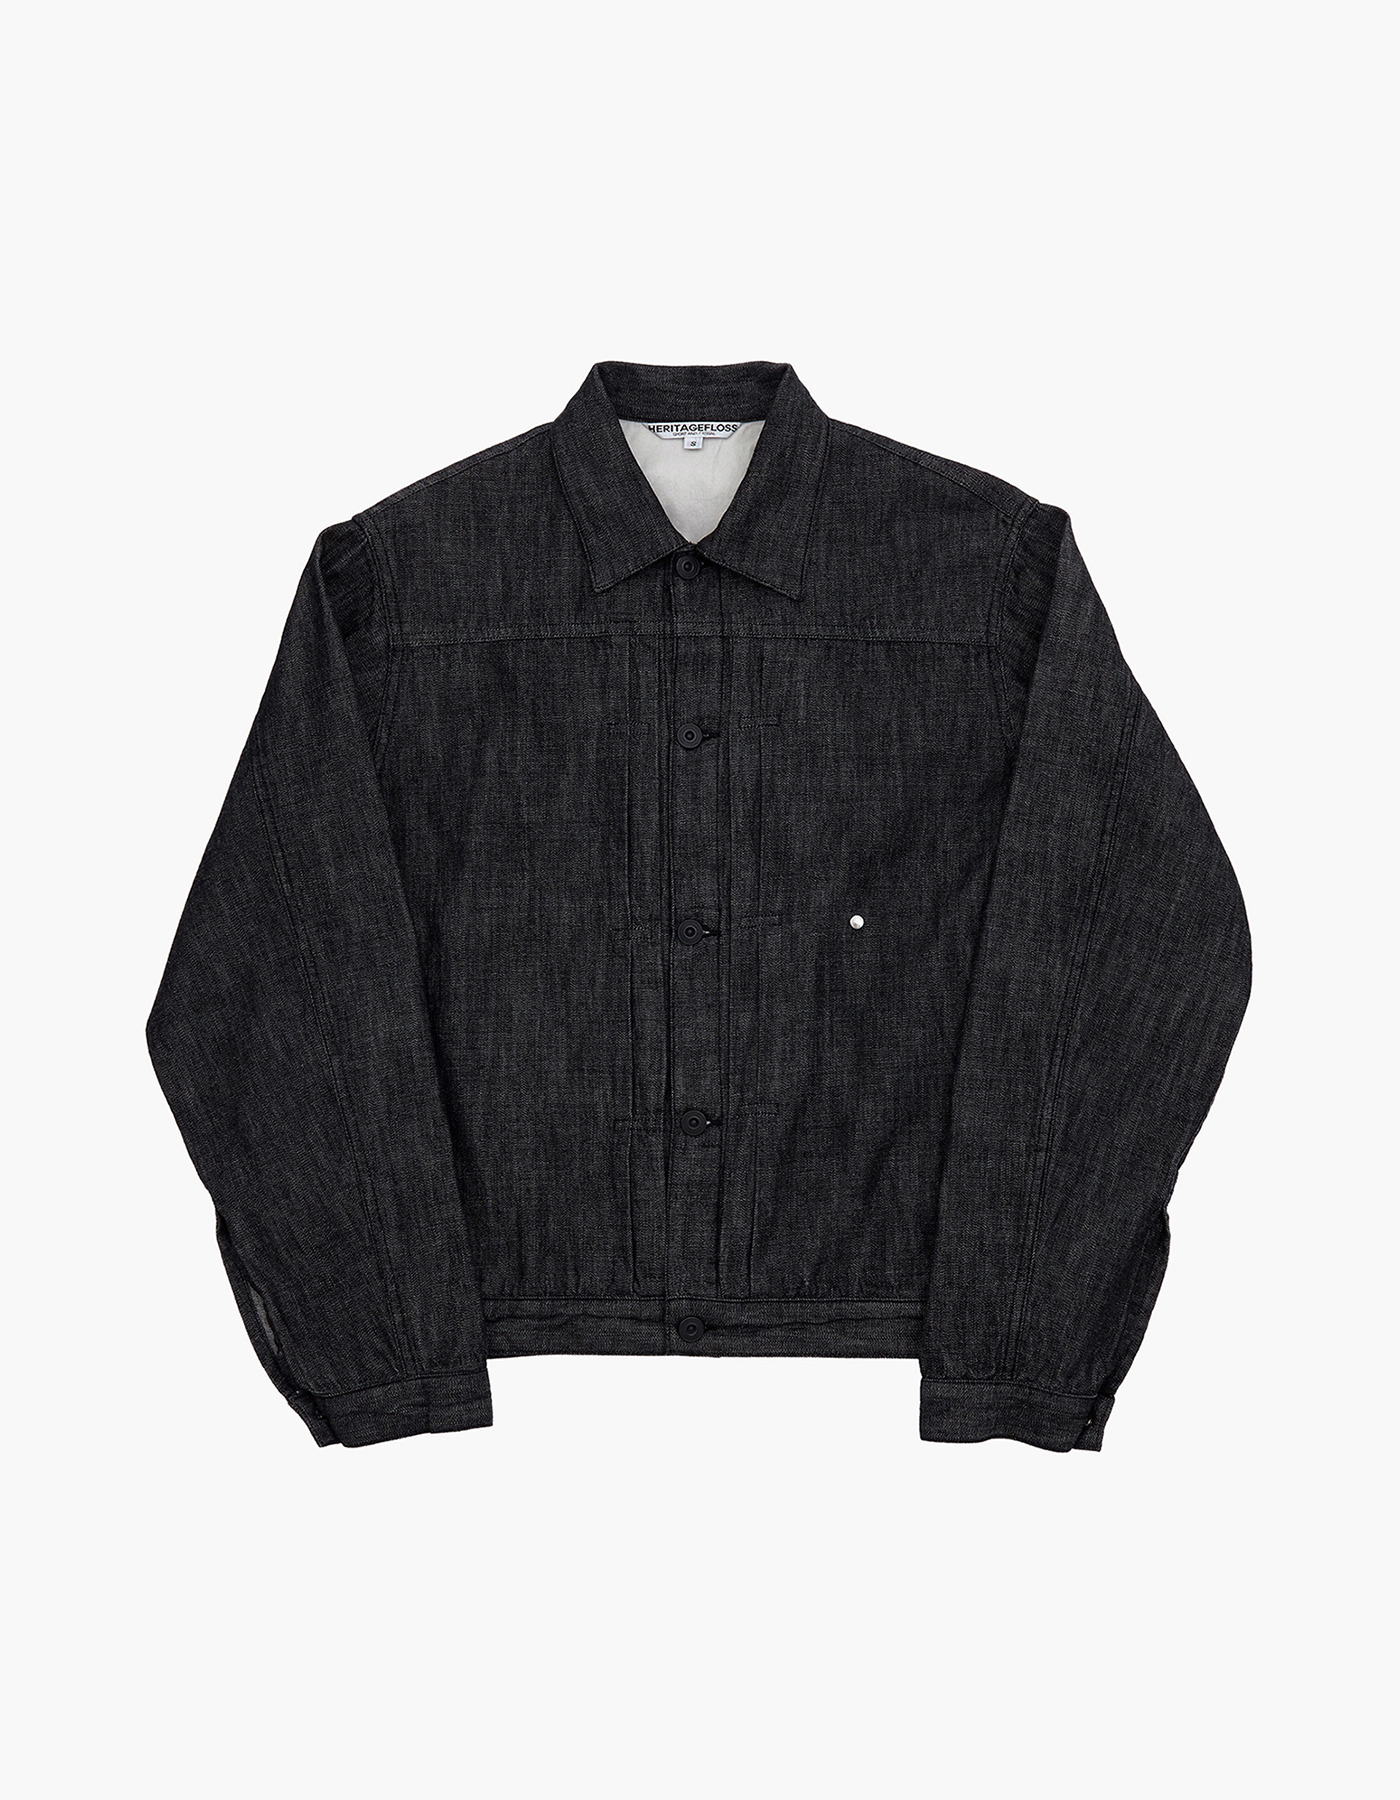 YARN DYED DENIM TRUCKER JACKET / BLACK